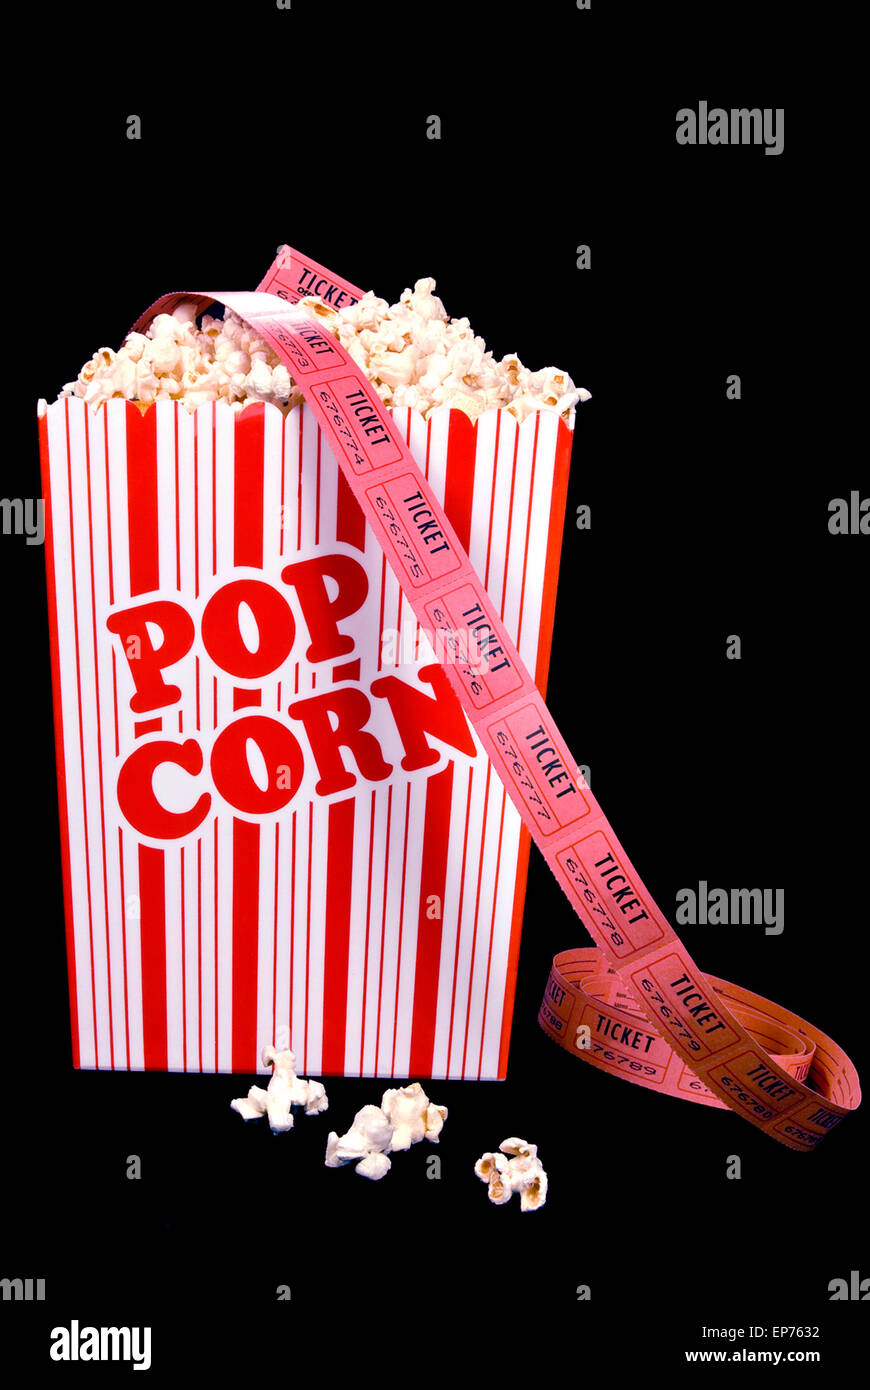 Bucket Of Popcorn With Roll Of Movie Tickets On Black Background - Stock Image